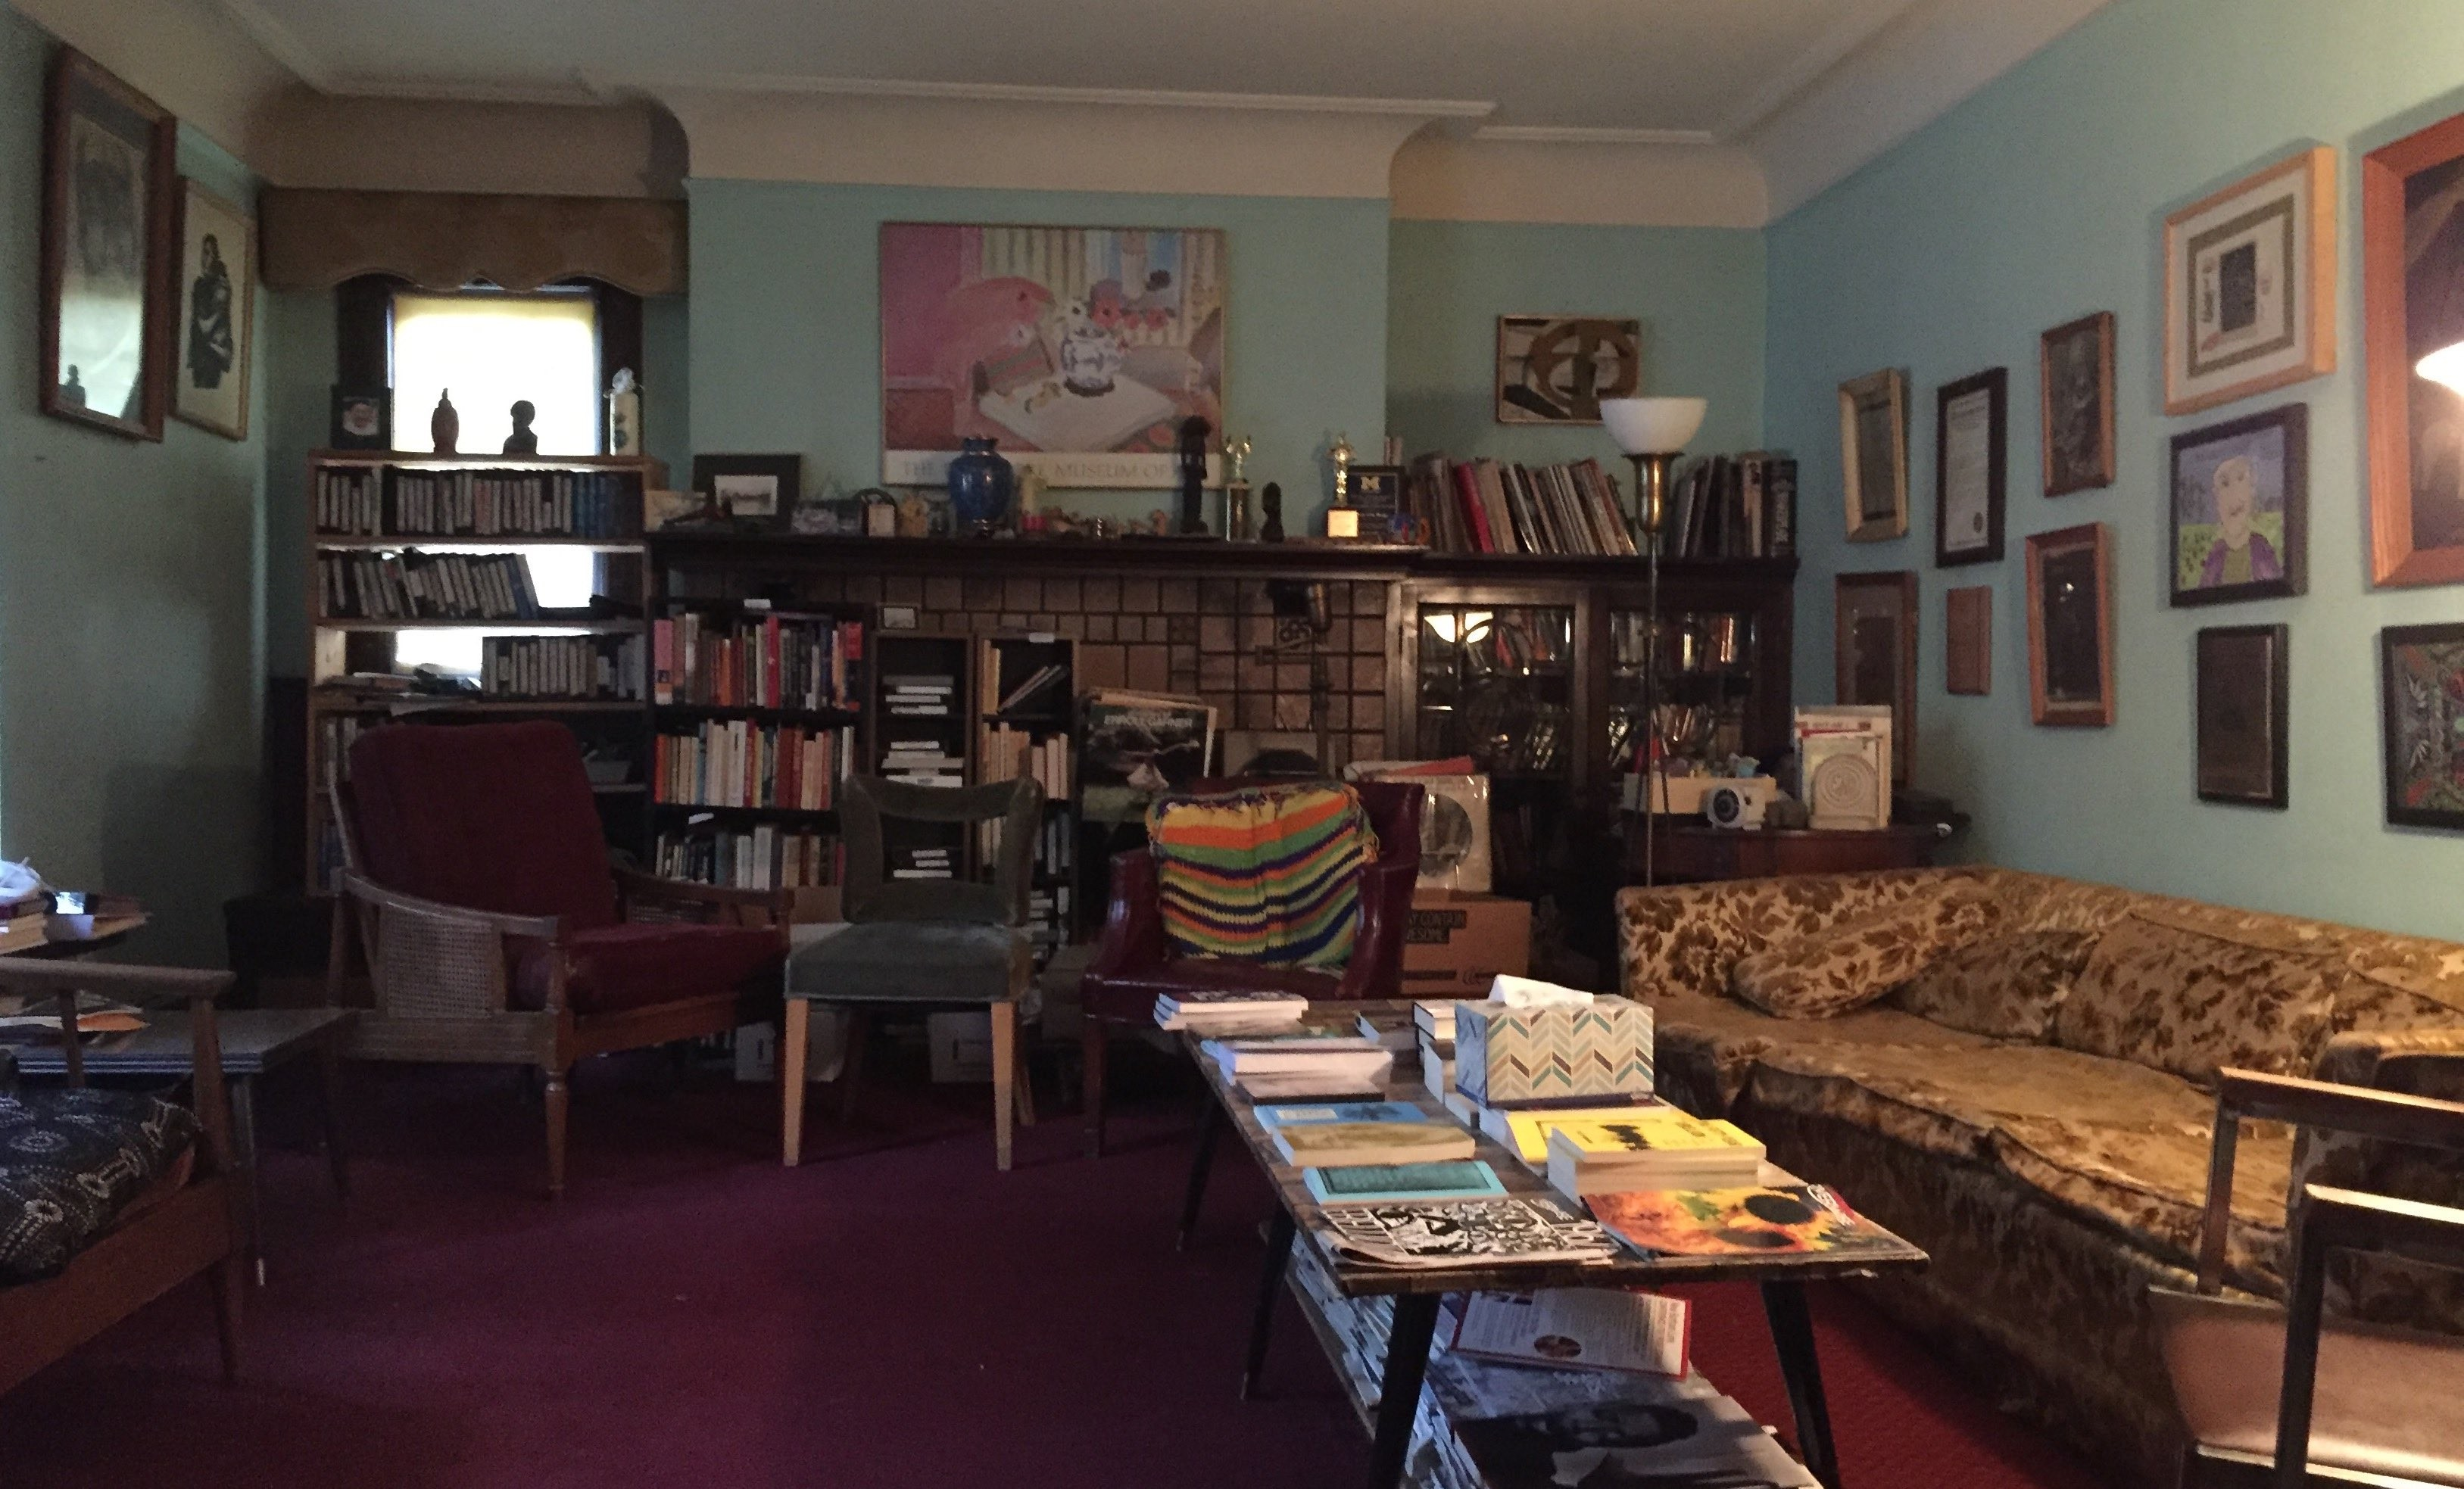 Living Room in Home of James and Grace Lee Boggs